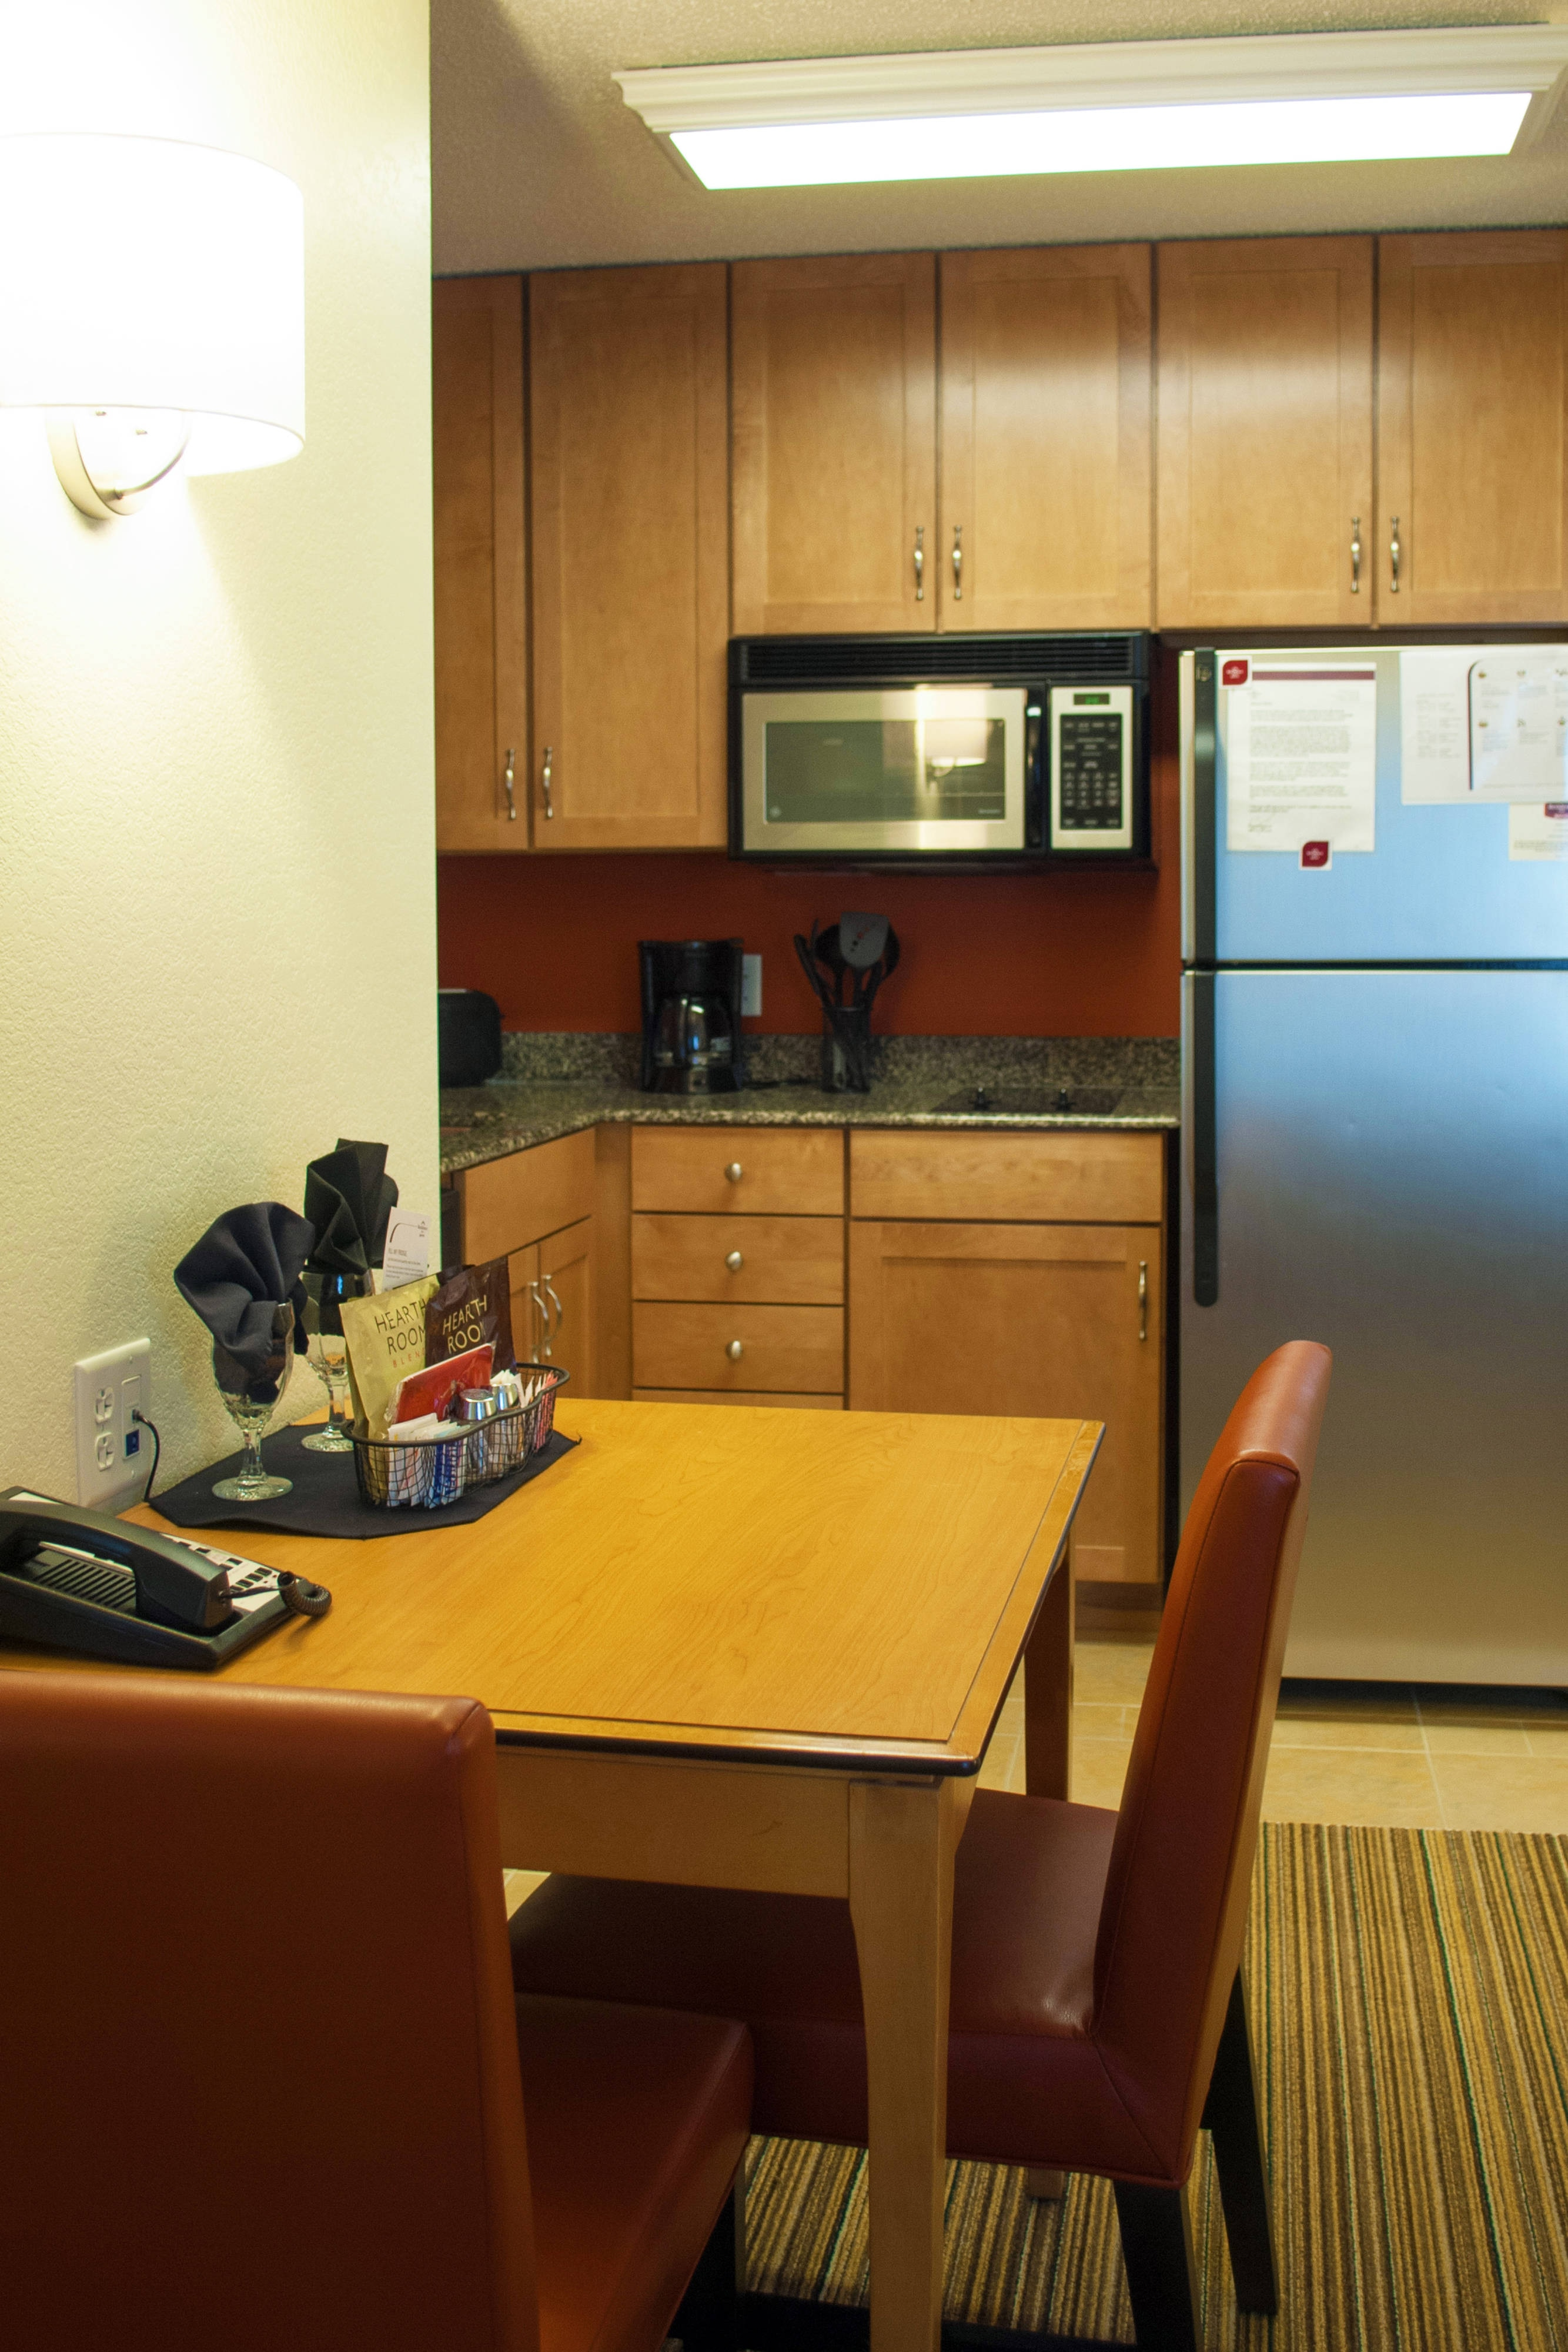 Carlisle hotel rooms with kitchens